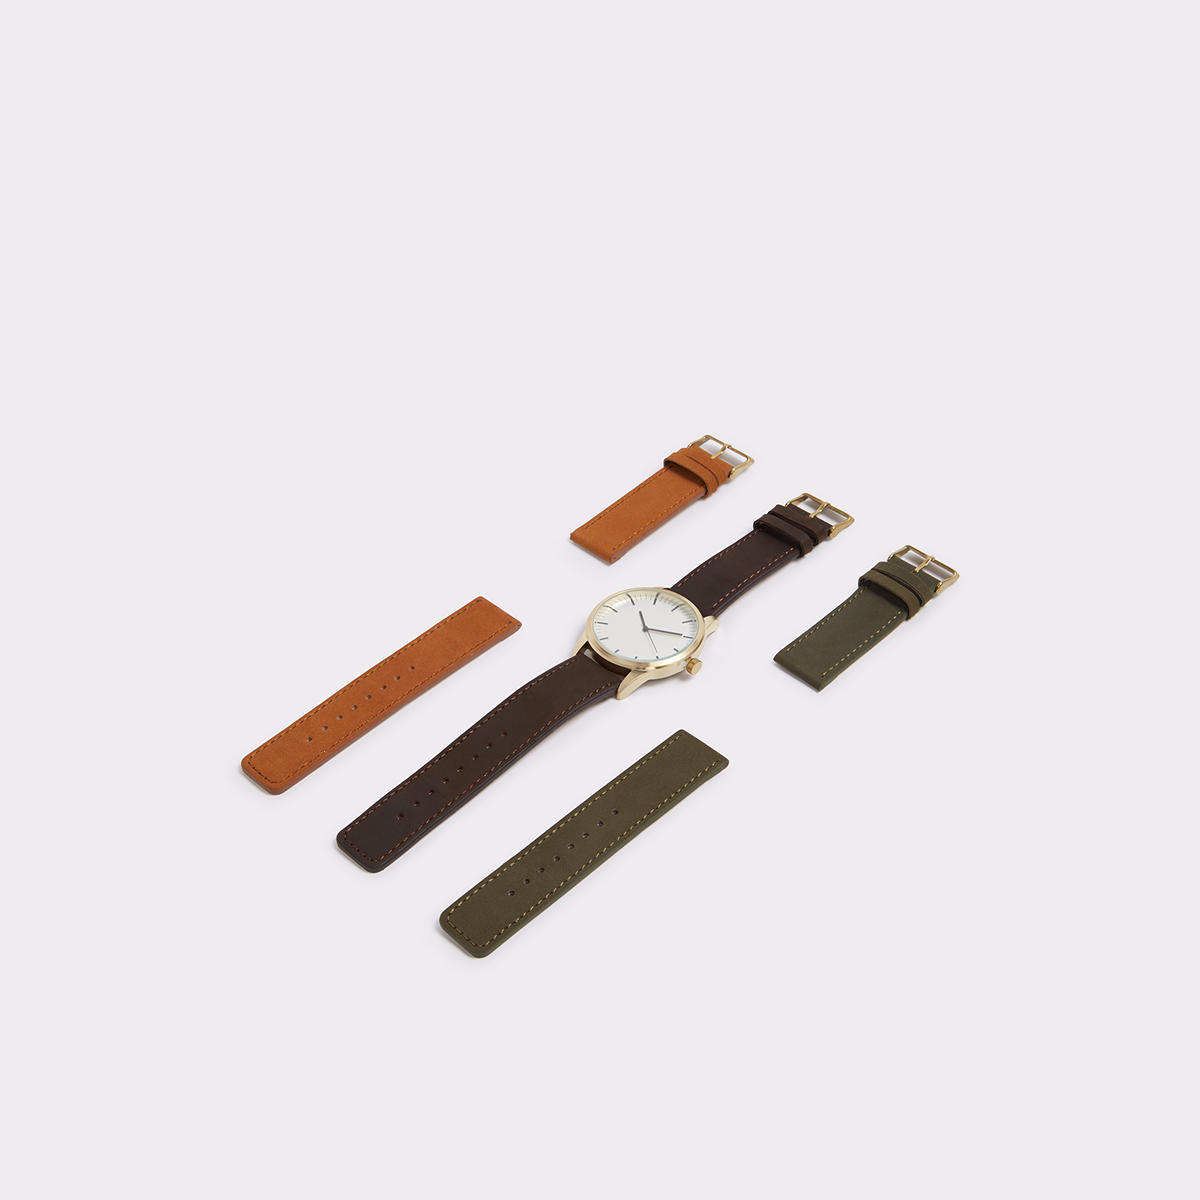 Macris Brown Men's Watches | ALDO US at Aldo Shoes in Victor, NY | Tuggl